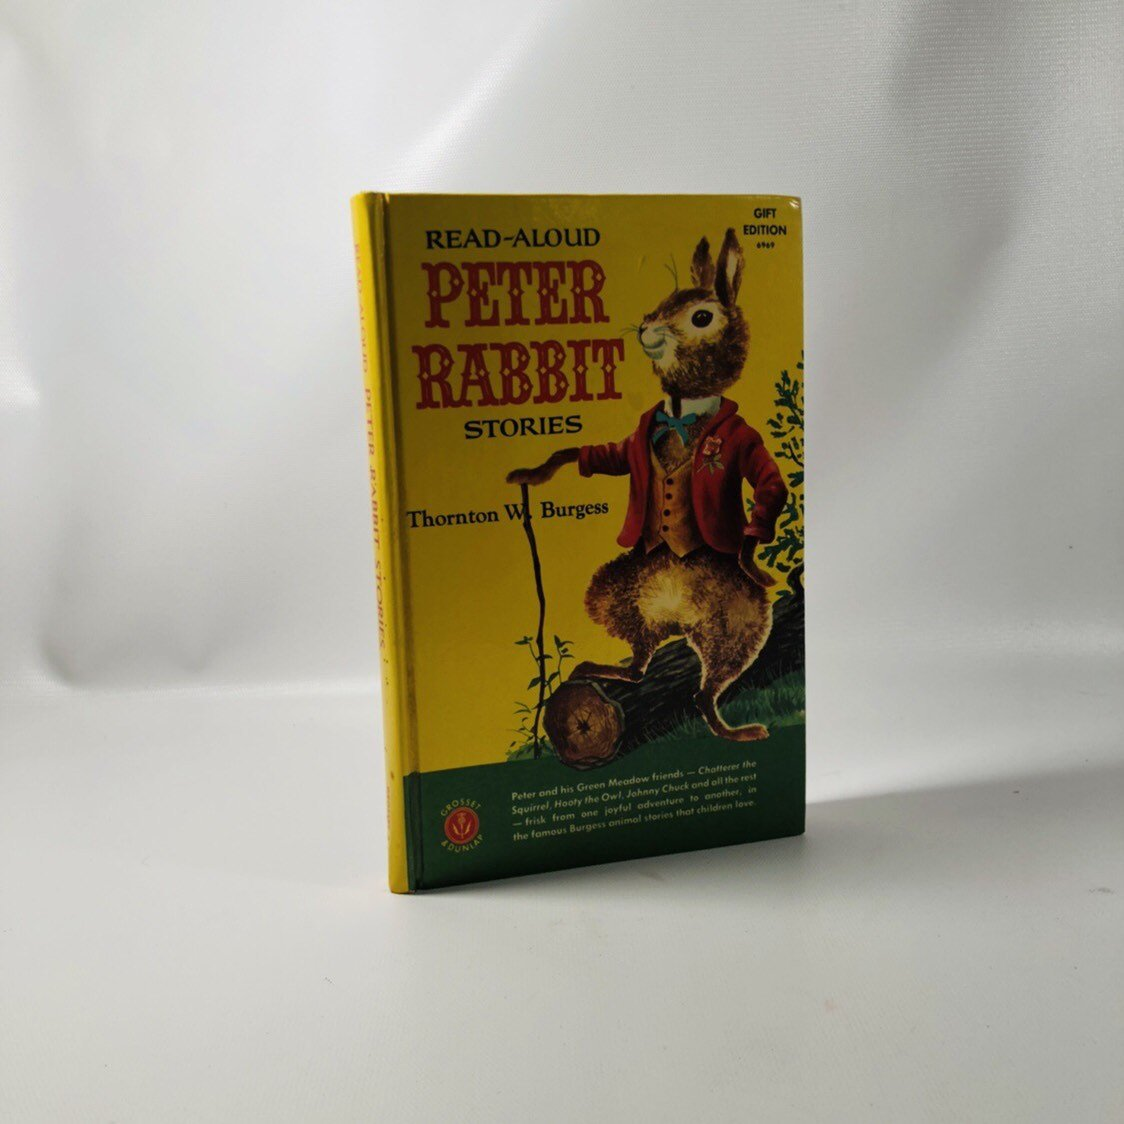 Read-Aloud Peter Rabbit Stories by Thornton W. Burgess 1958 A Vintage Children's Book